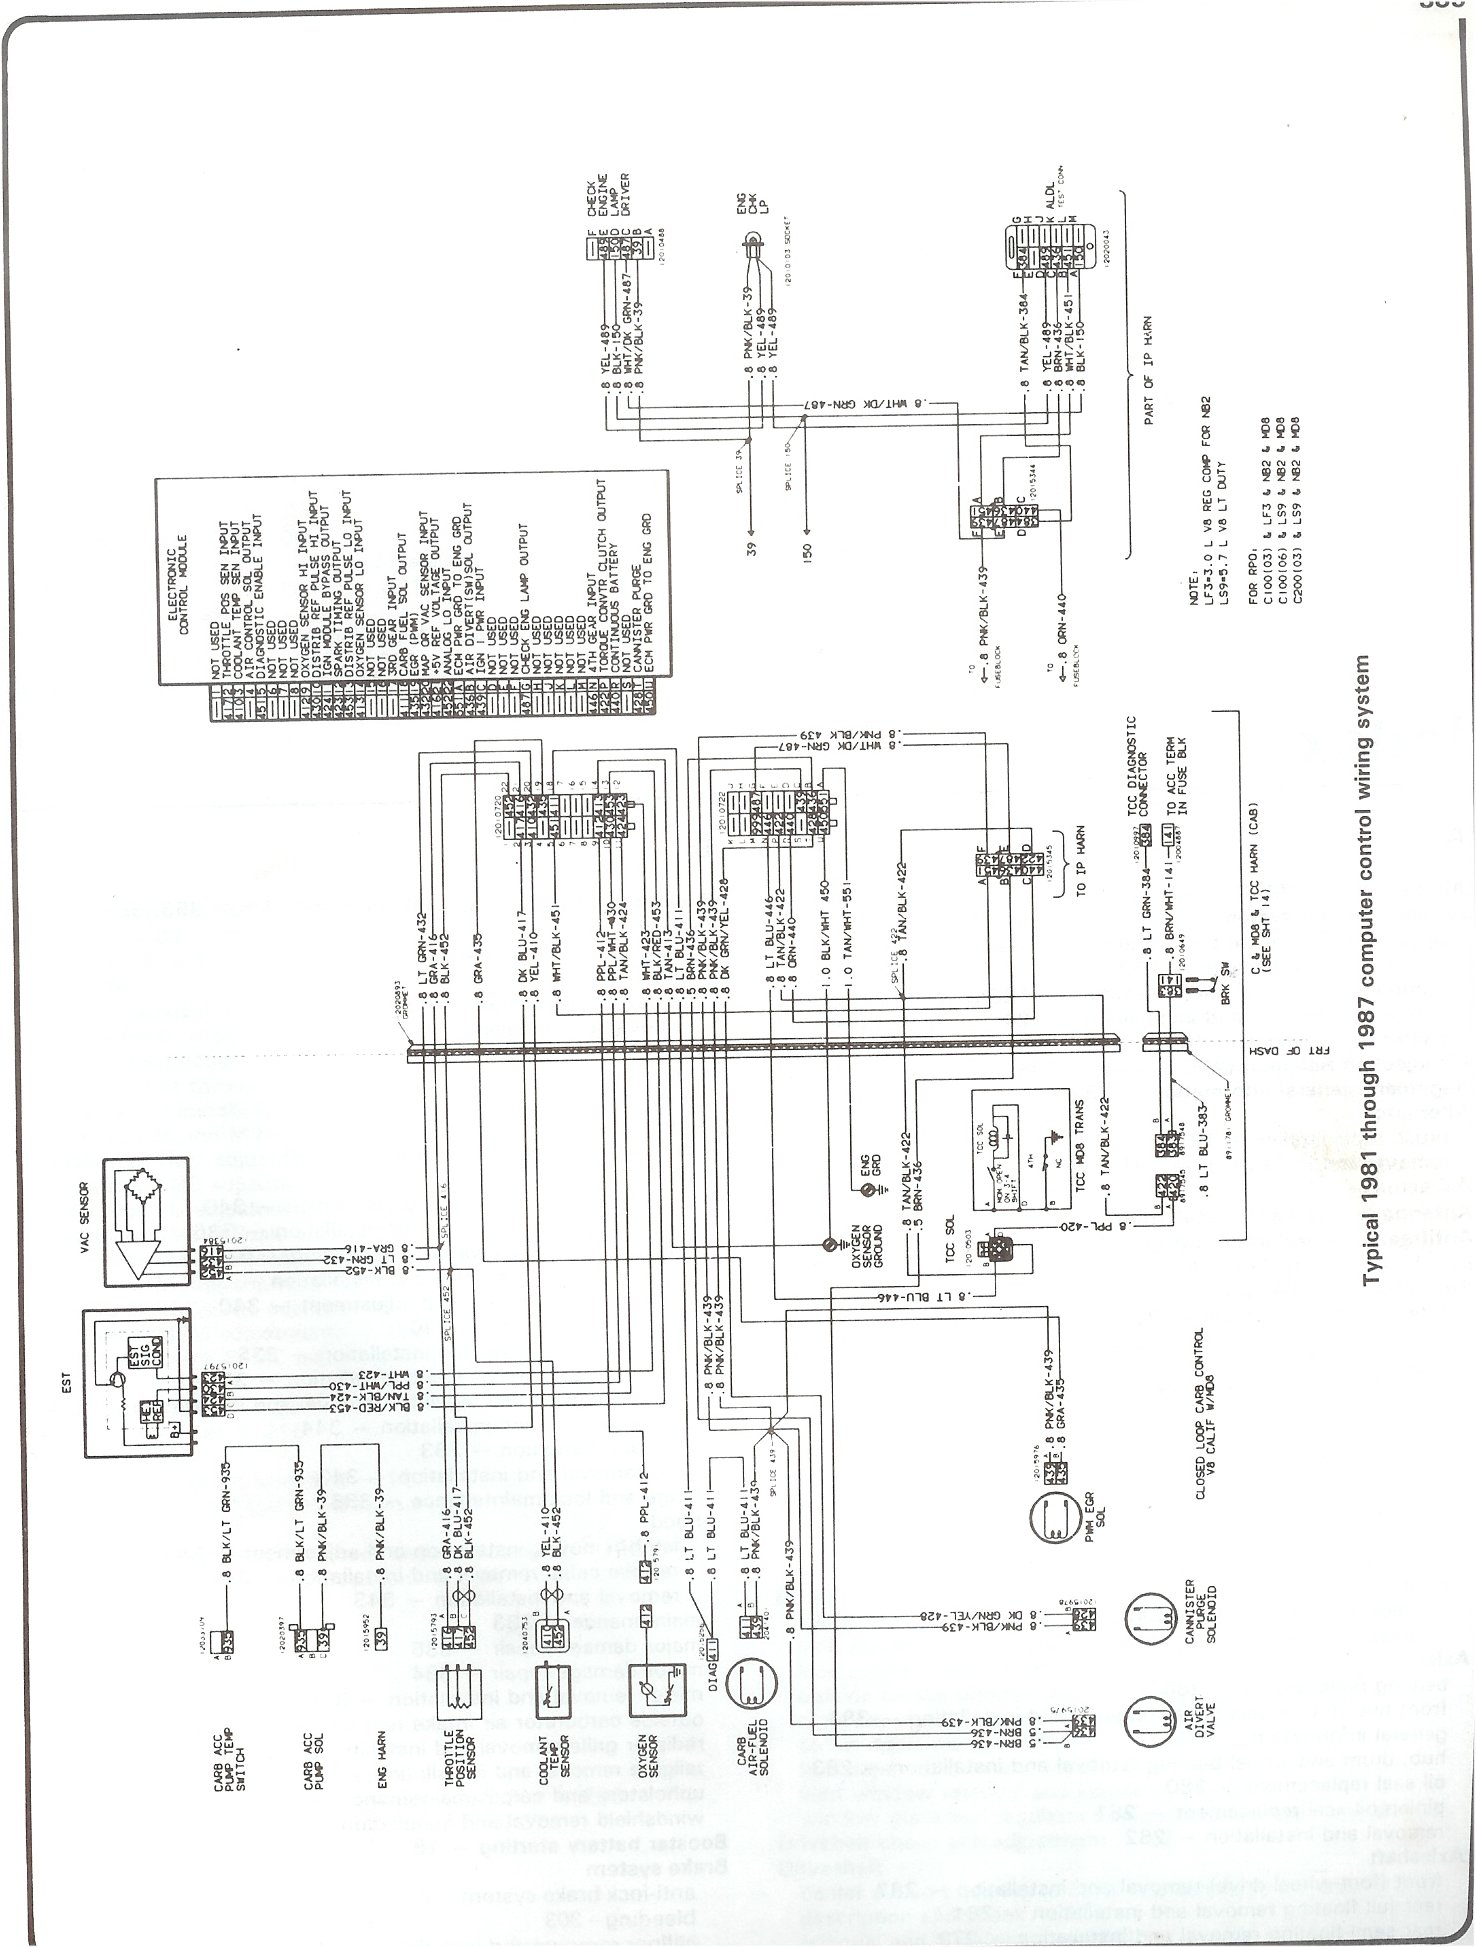 hight resolution of dresser 8 check valve diagram wiring diagram dresser wiring diagram